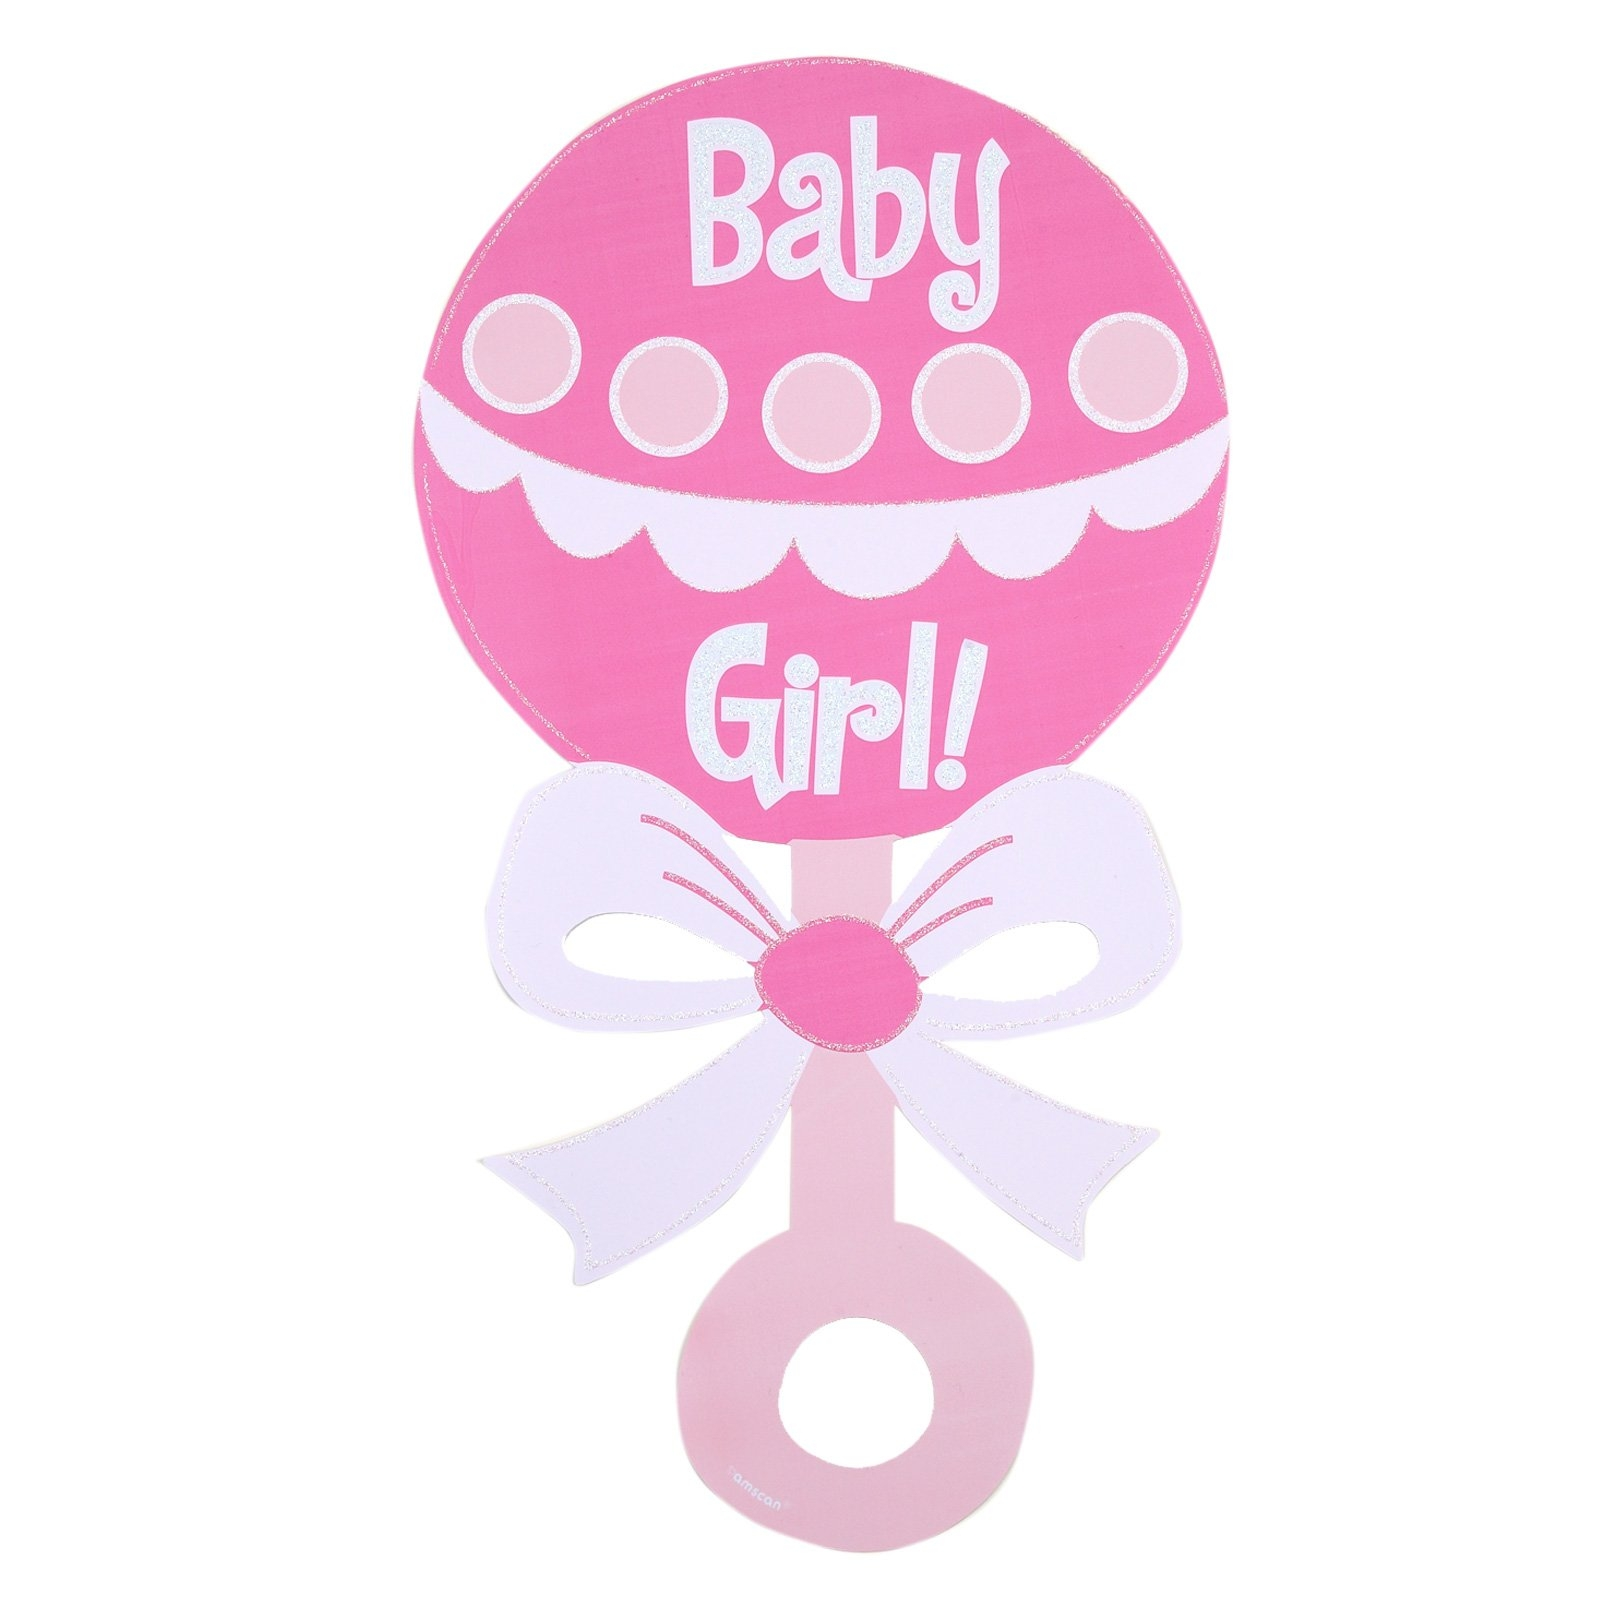 Baby girl rattle clipart baby-Baby girl rattle clipart baby-13